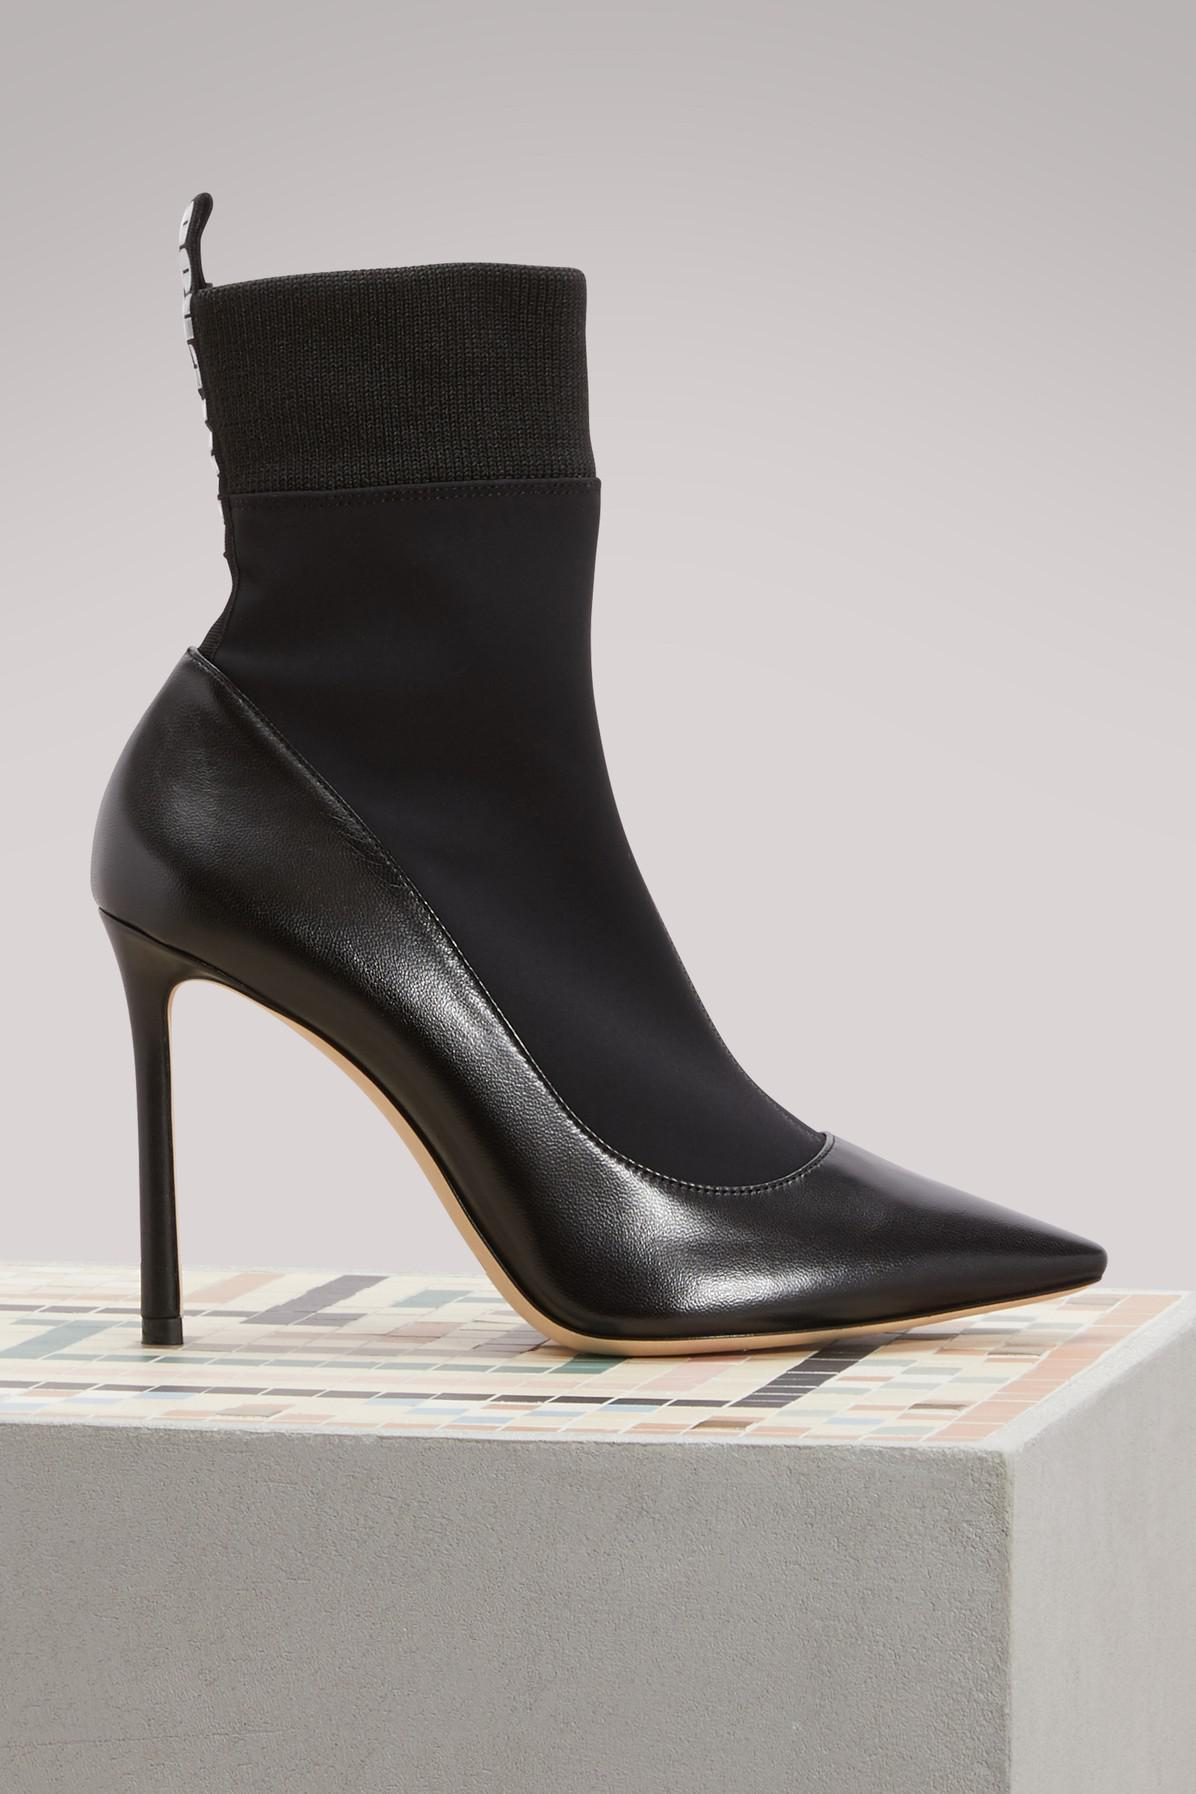 2d7d3663a854 Lyst - Jimmy Choo Brandon 100 Ankle Boots in Black